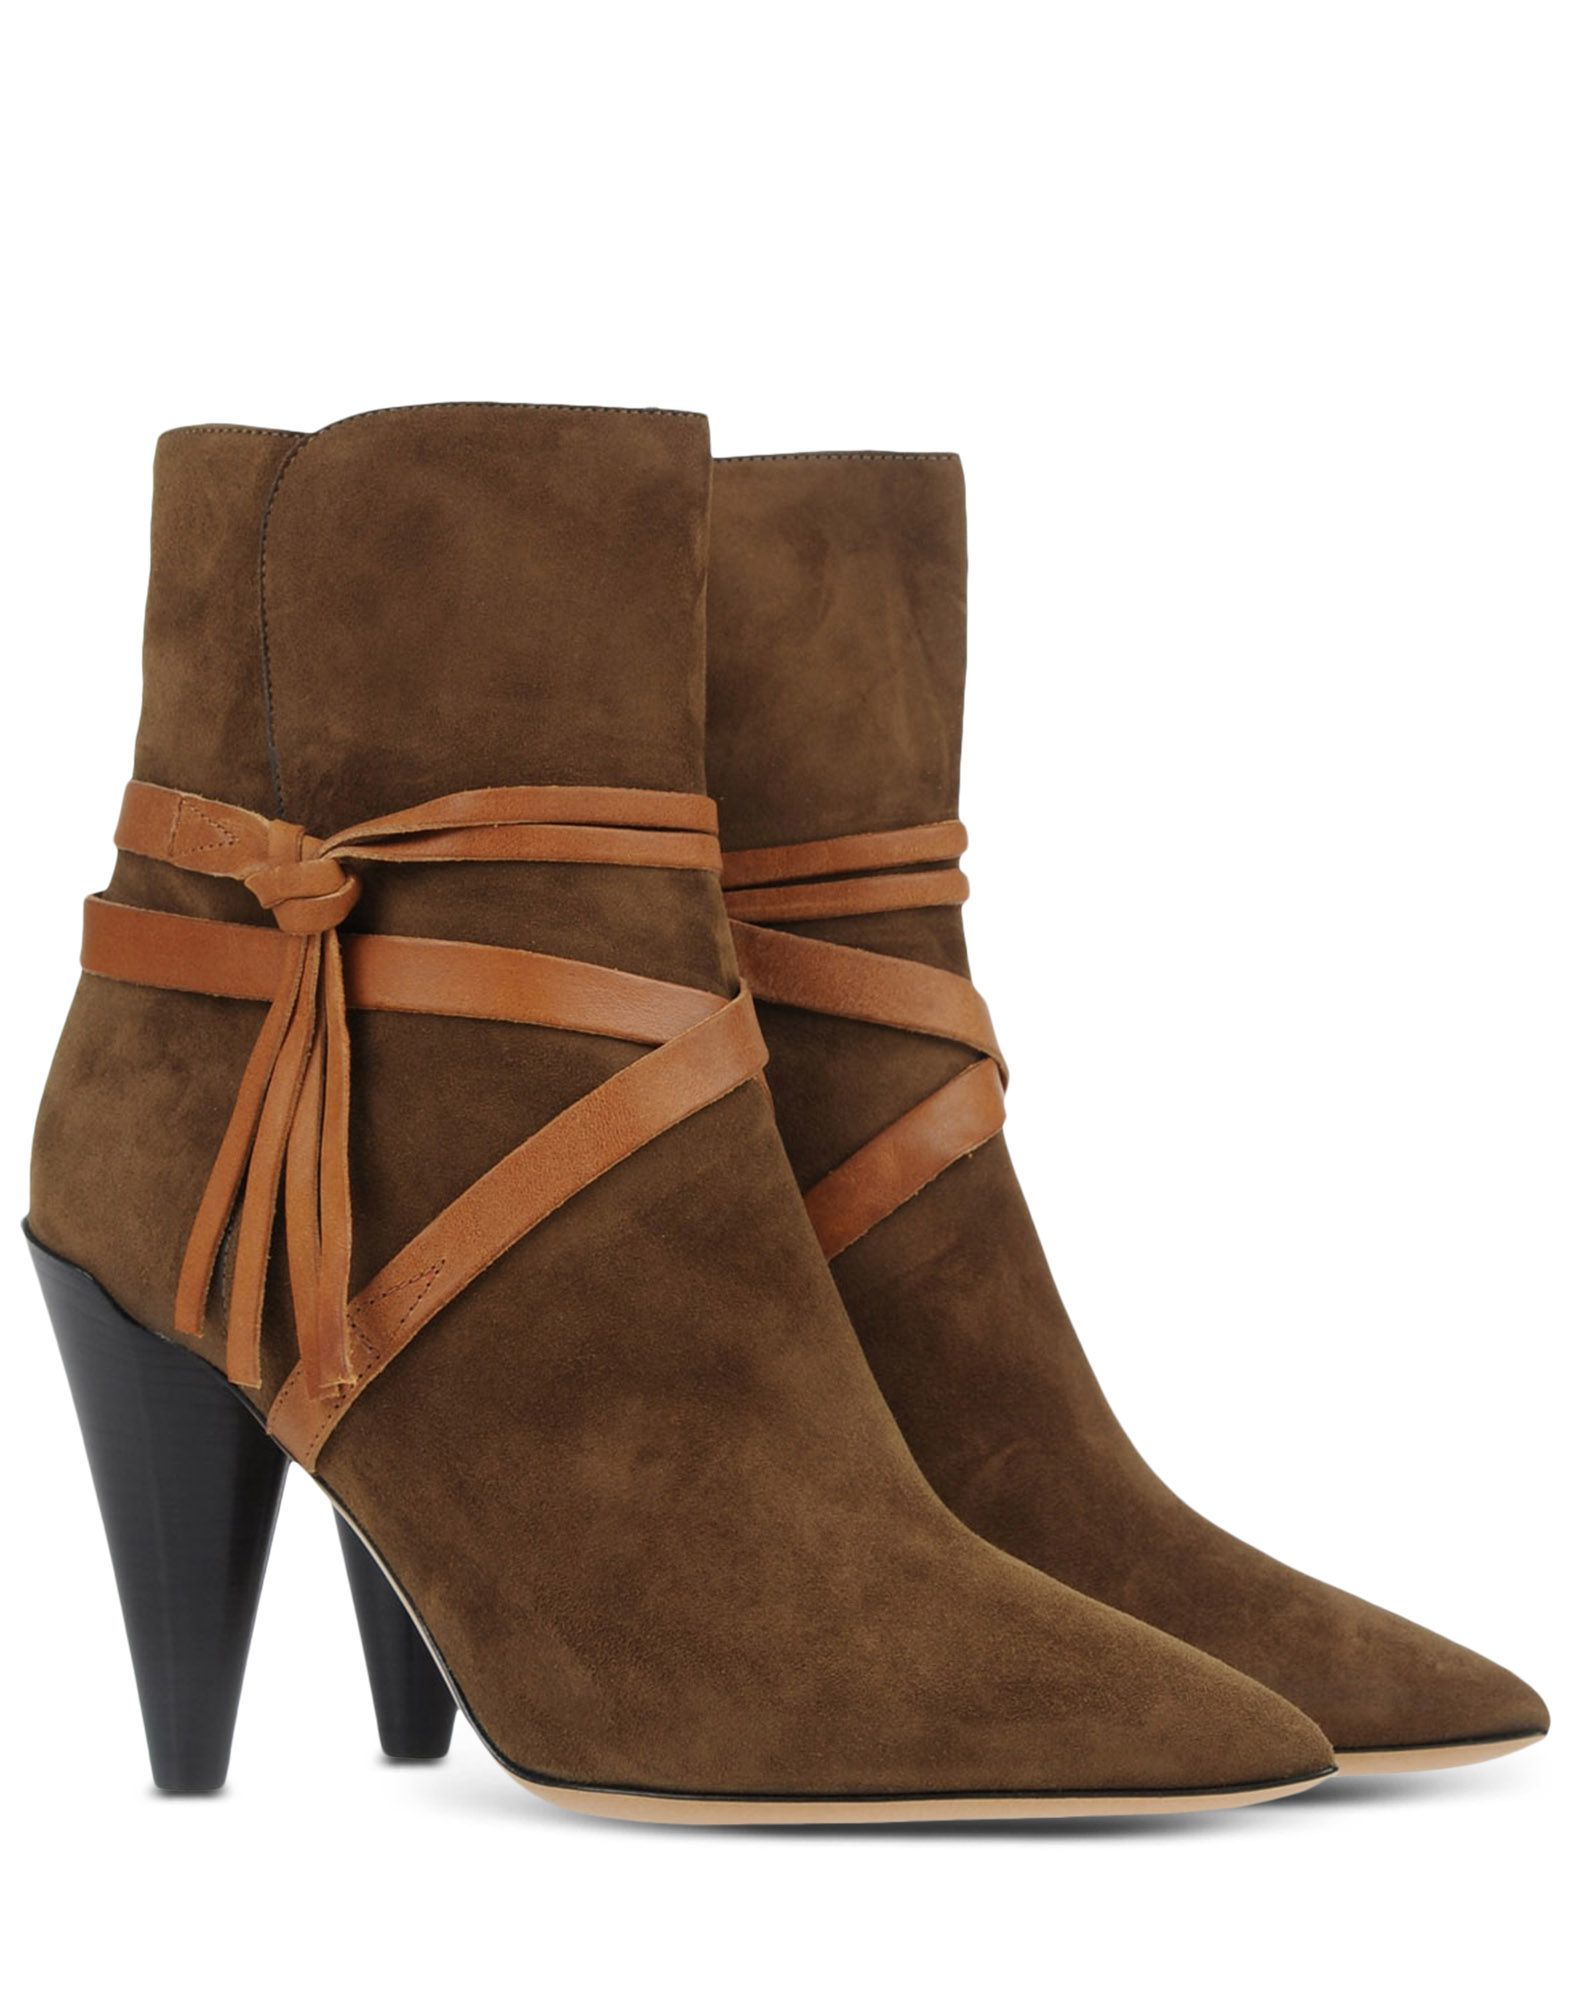 isabel marant wraparound strap suede ankle boots in khaki lyst. Black Bedroom Furniture Sets. Home Design Ideas